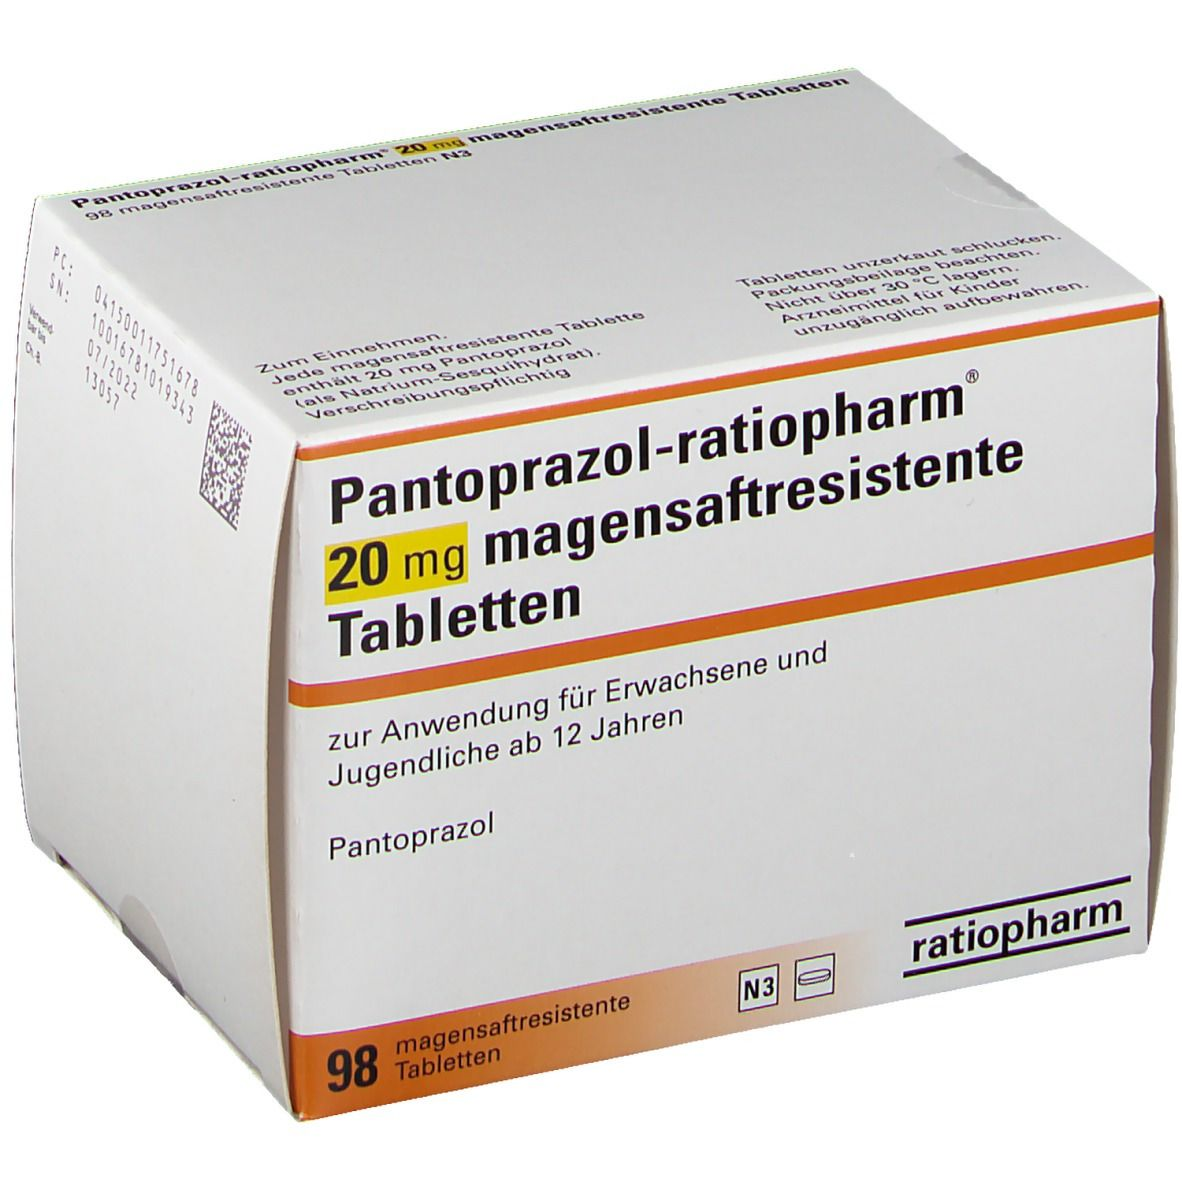 Pantoprazol ratiopharm® 20 mg Tabletten